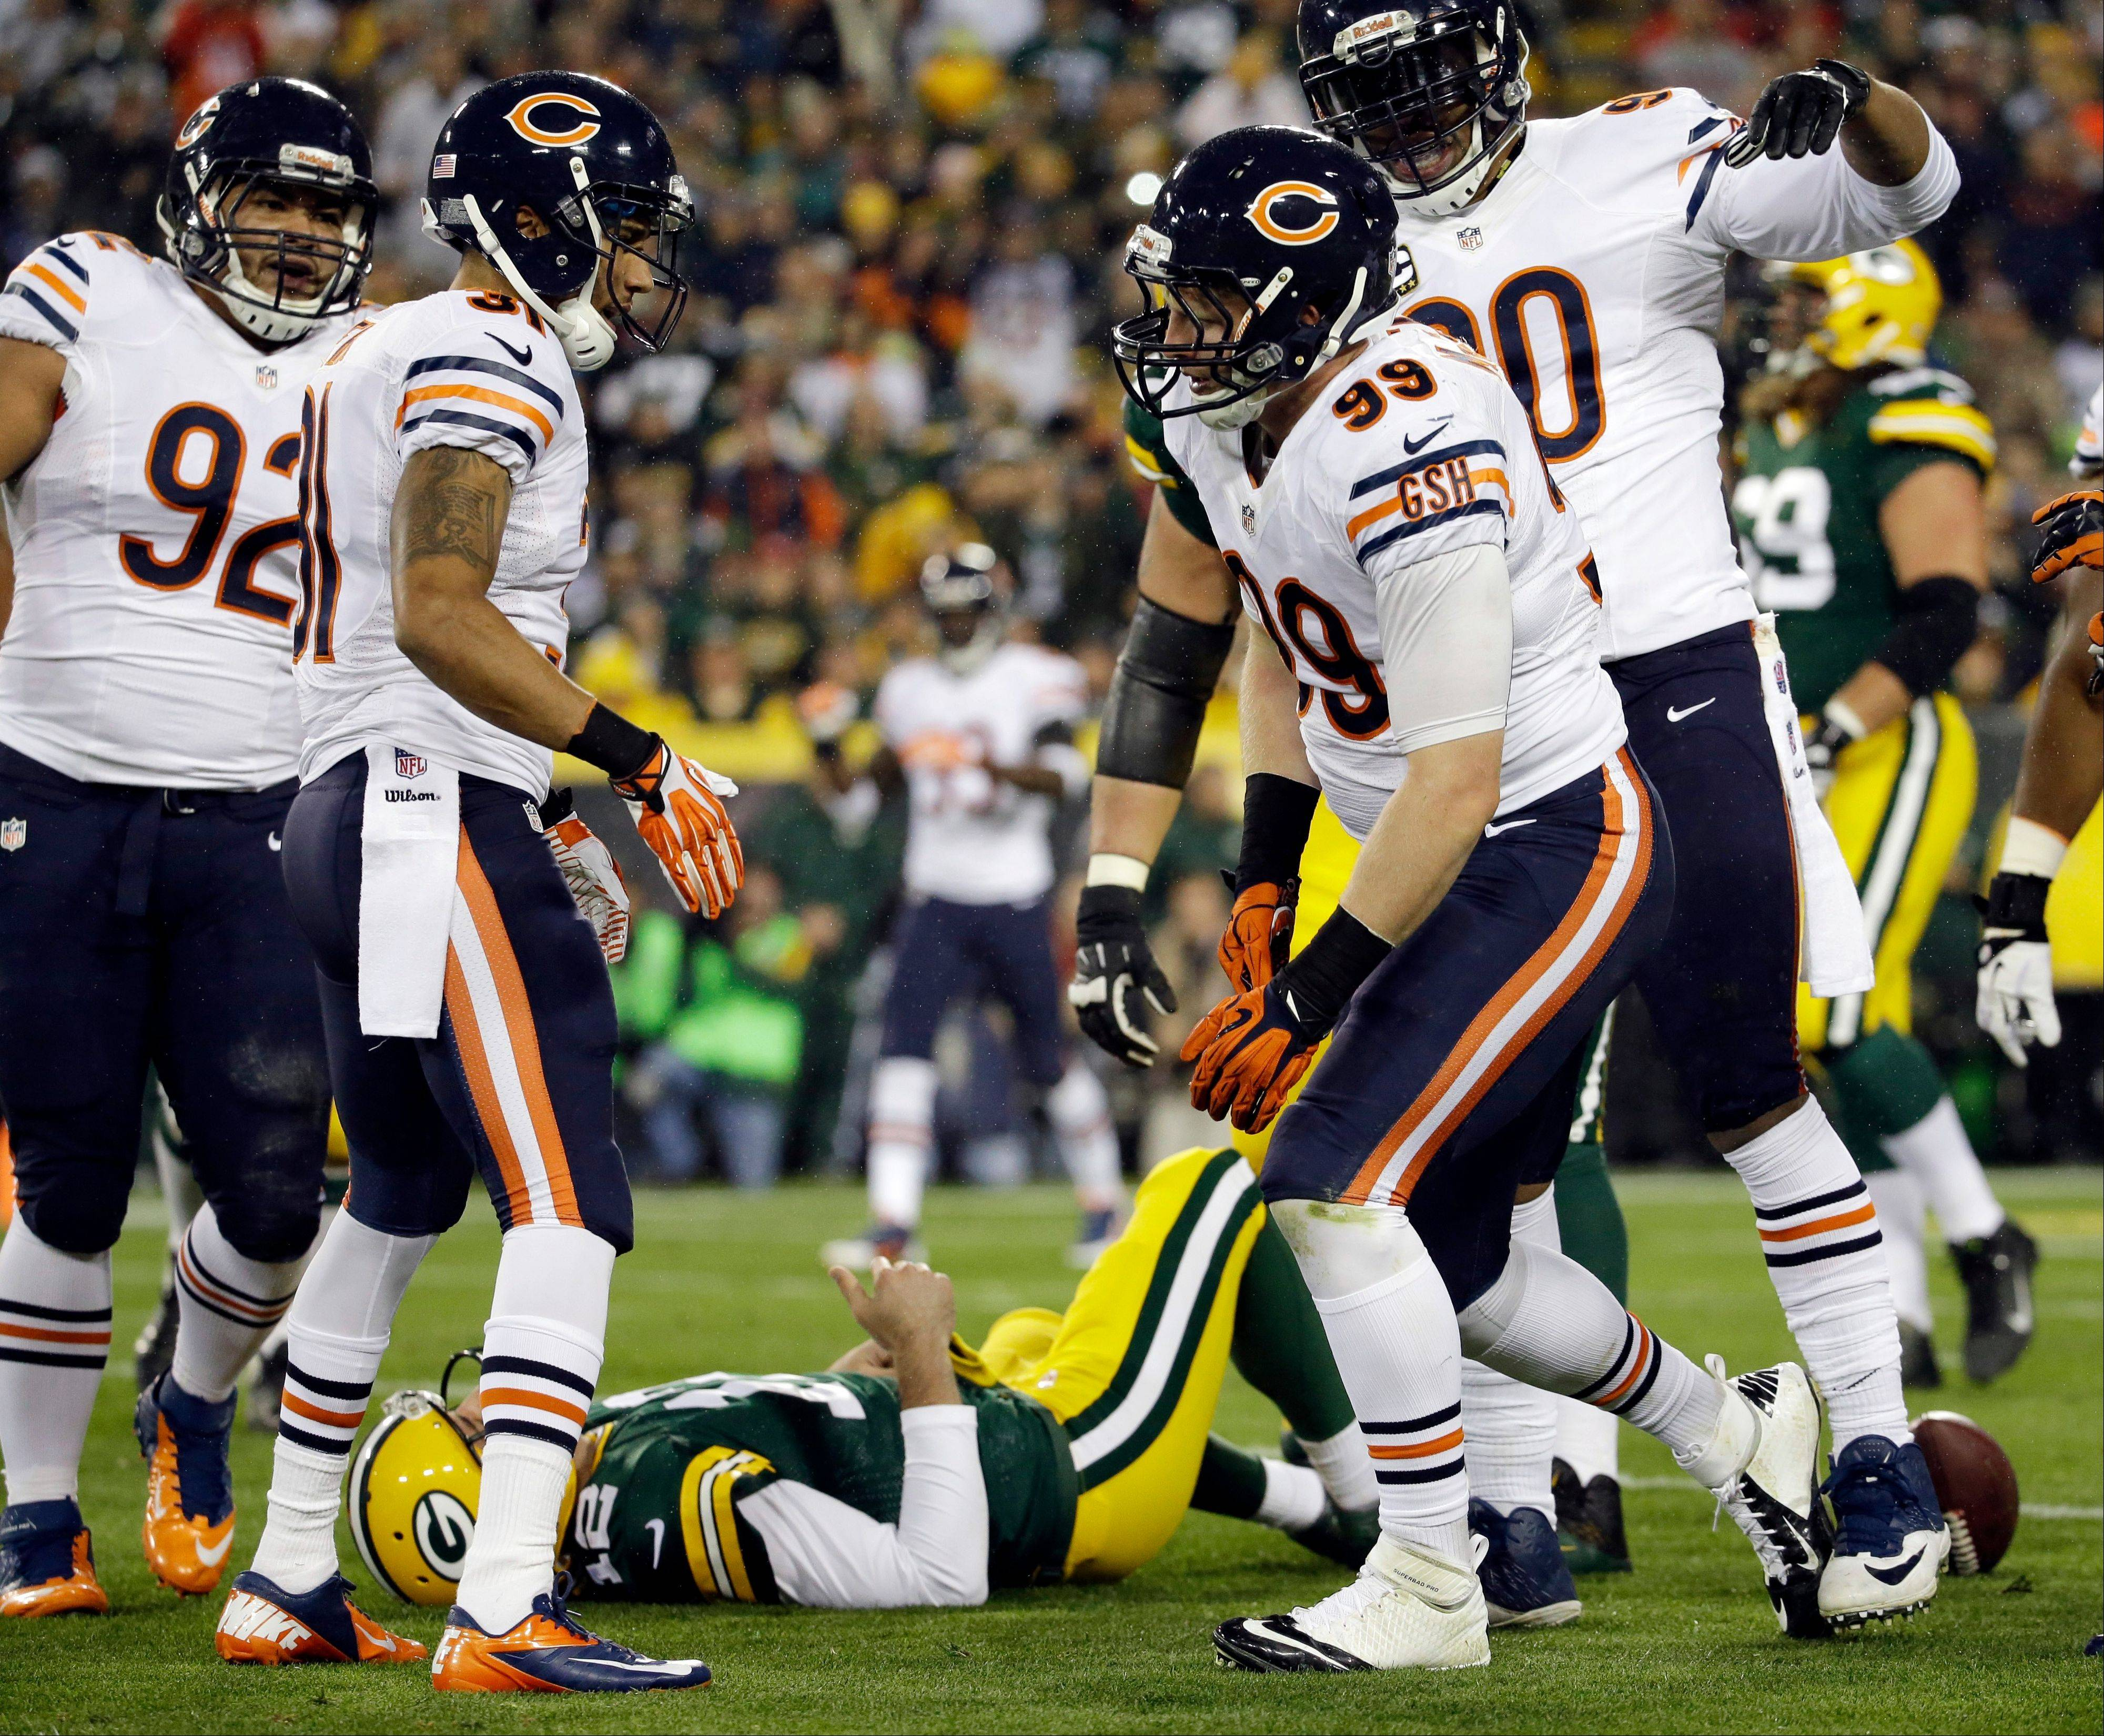 Bears' defense leaps ahead against Pack